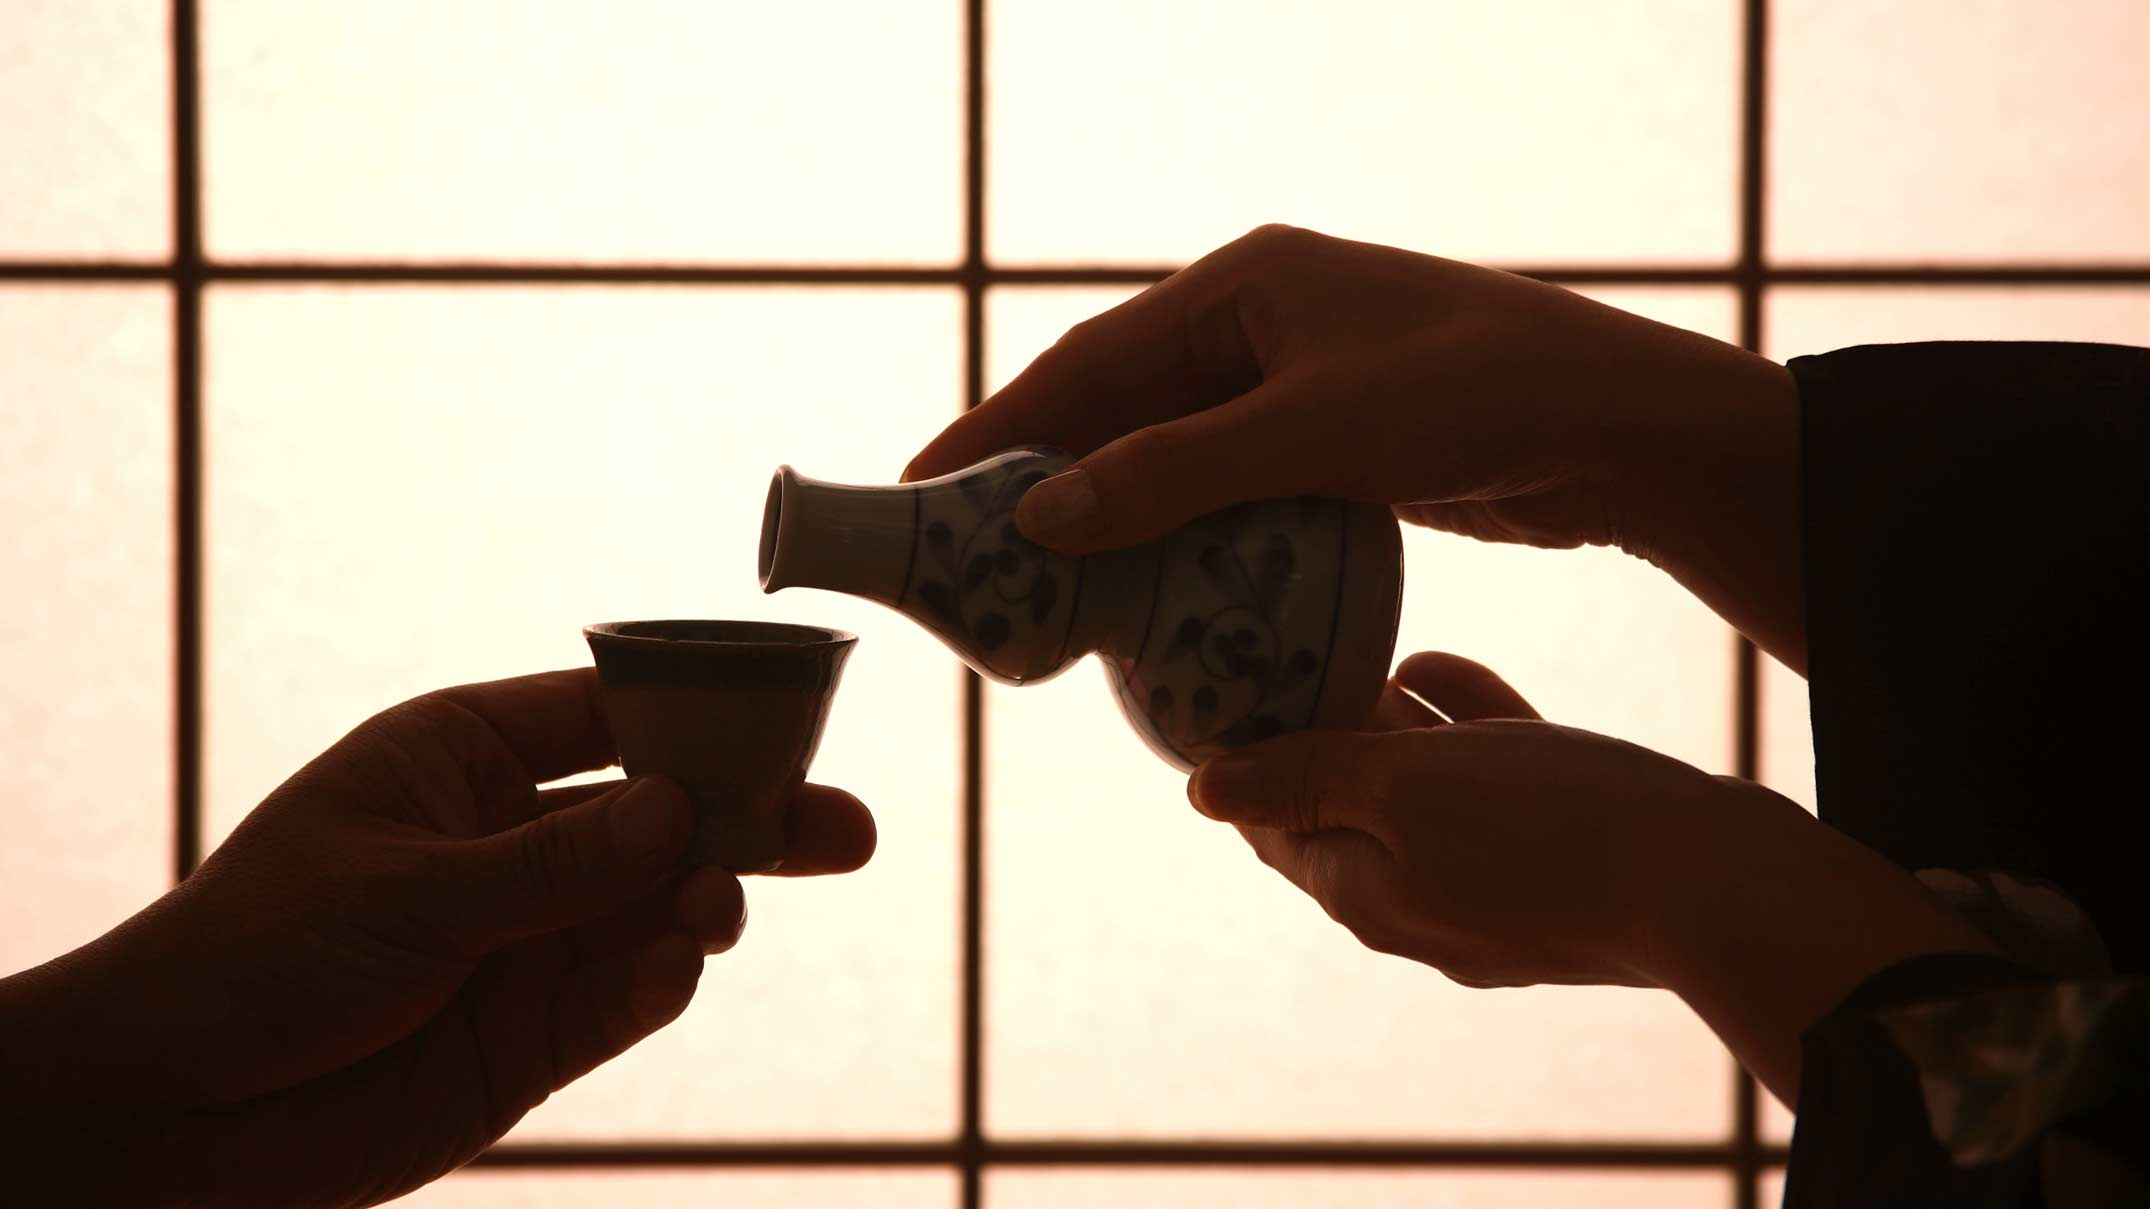 Silhouette of Hands holding a Sake Cup and Bottle